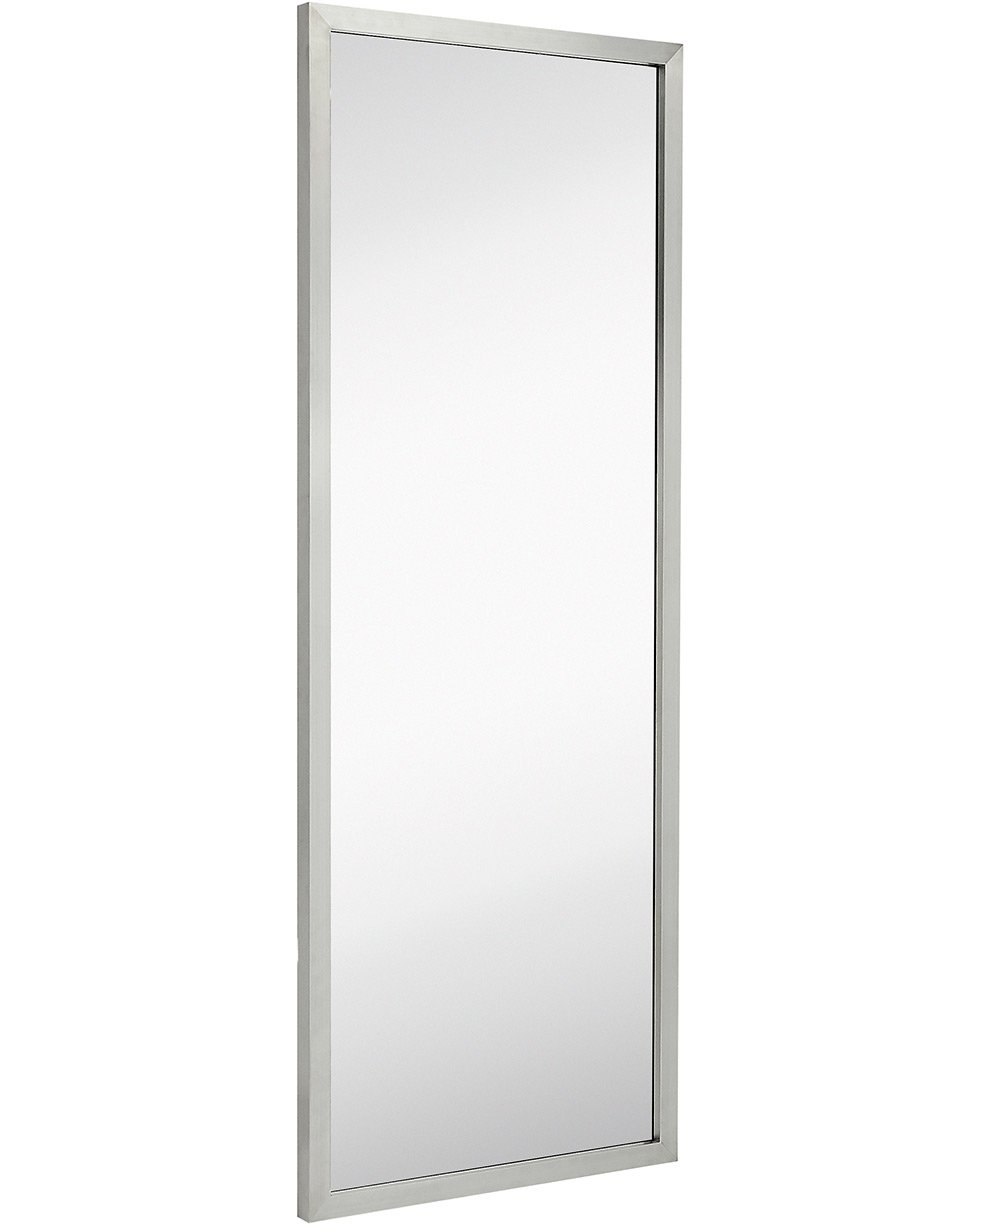 Commercial Restroom Full Length Wall Mirror | Contemporary Industrial Strength | Brushed Metal Silver Rectangle Mirrored Glass | Vanity, Bedroom or Restroom Horizontal & Vertical (18'' x 48'')